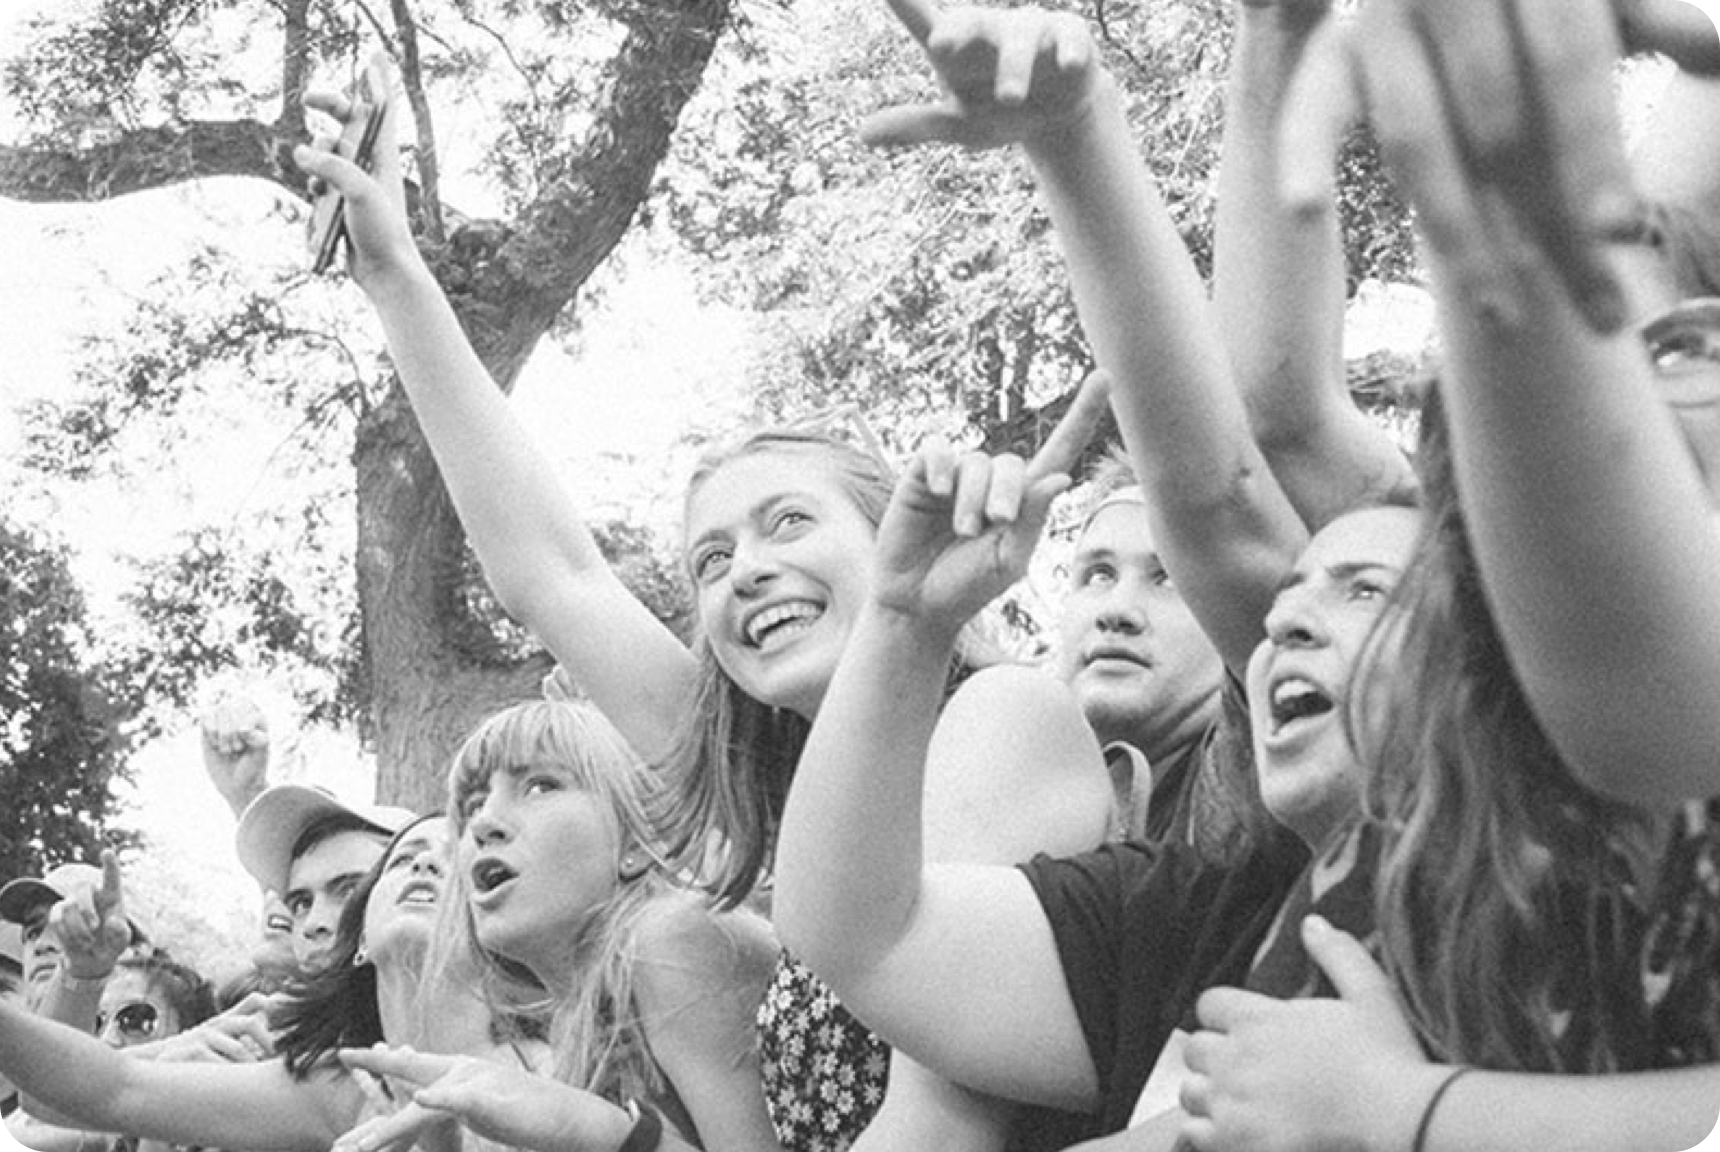 A group of happy young people with their arms extended and smiling